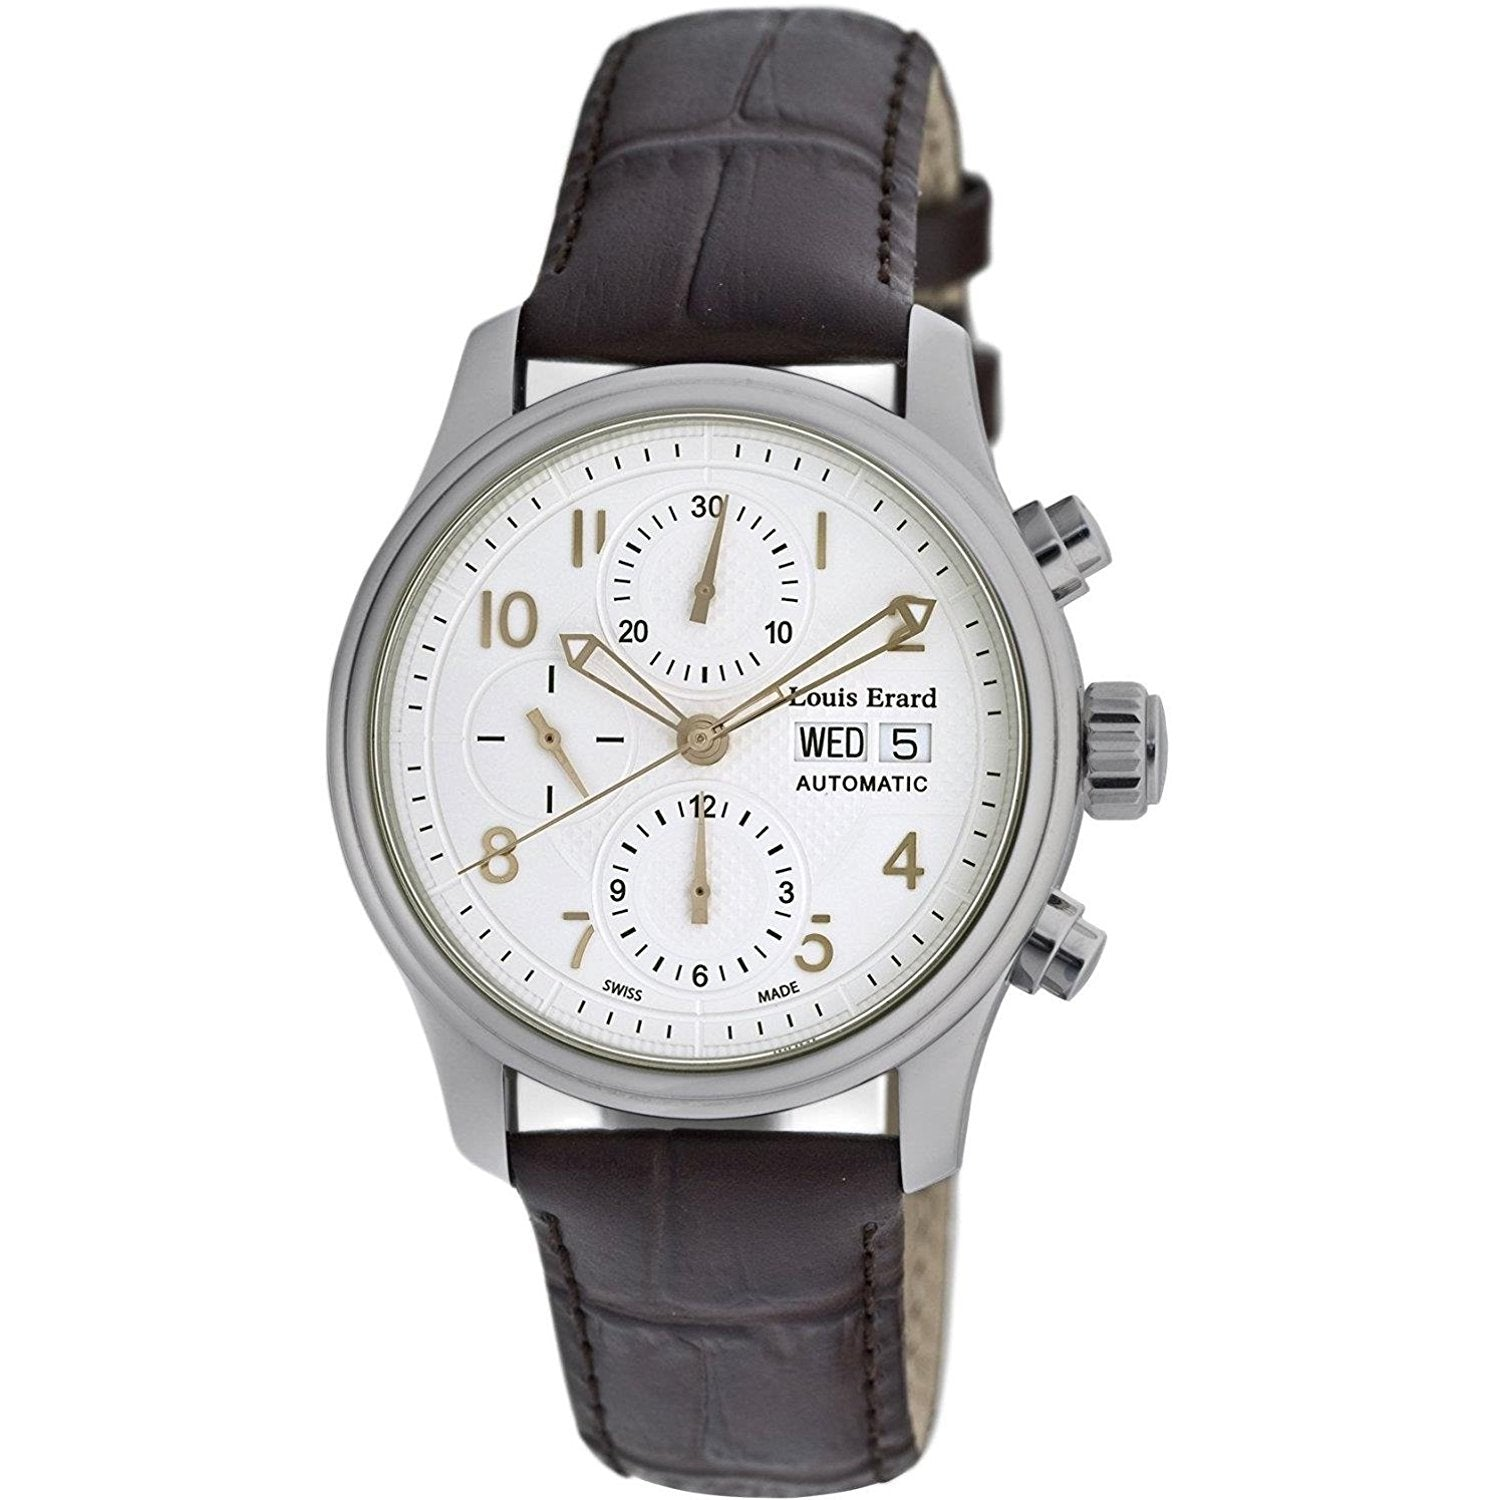 Louis Erard Heritage Collection Swiss Automatic Cream Dial Men's Watch 78269AA01.BDC21